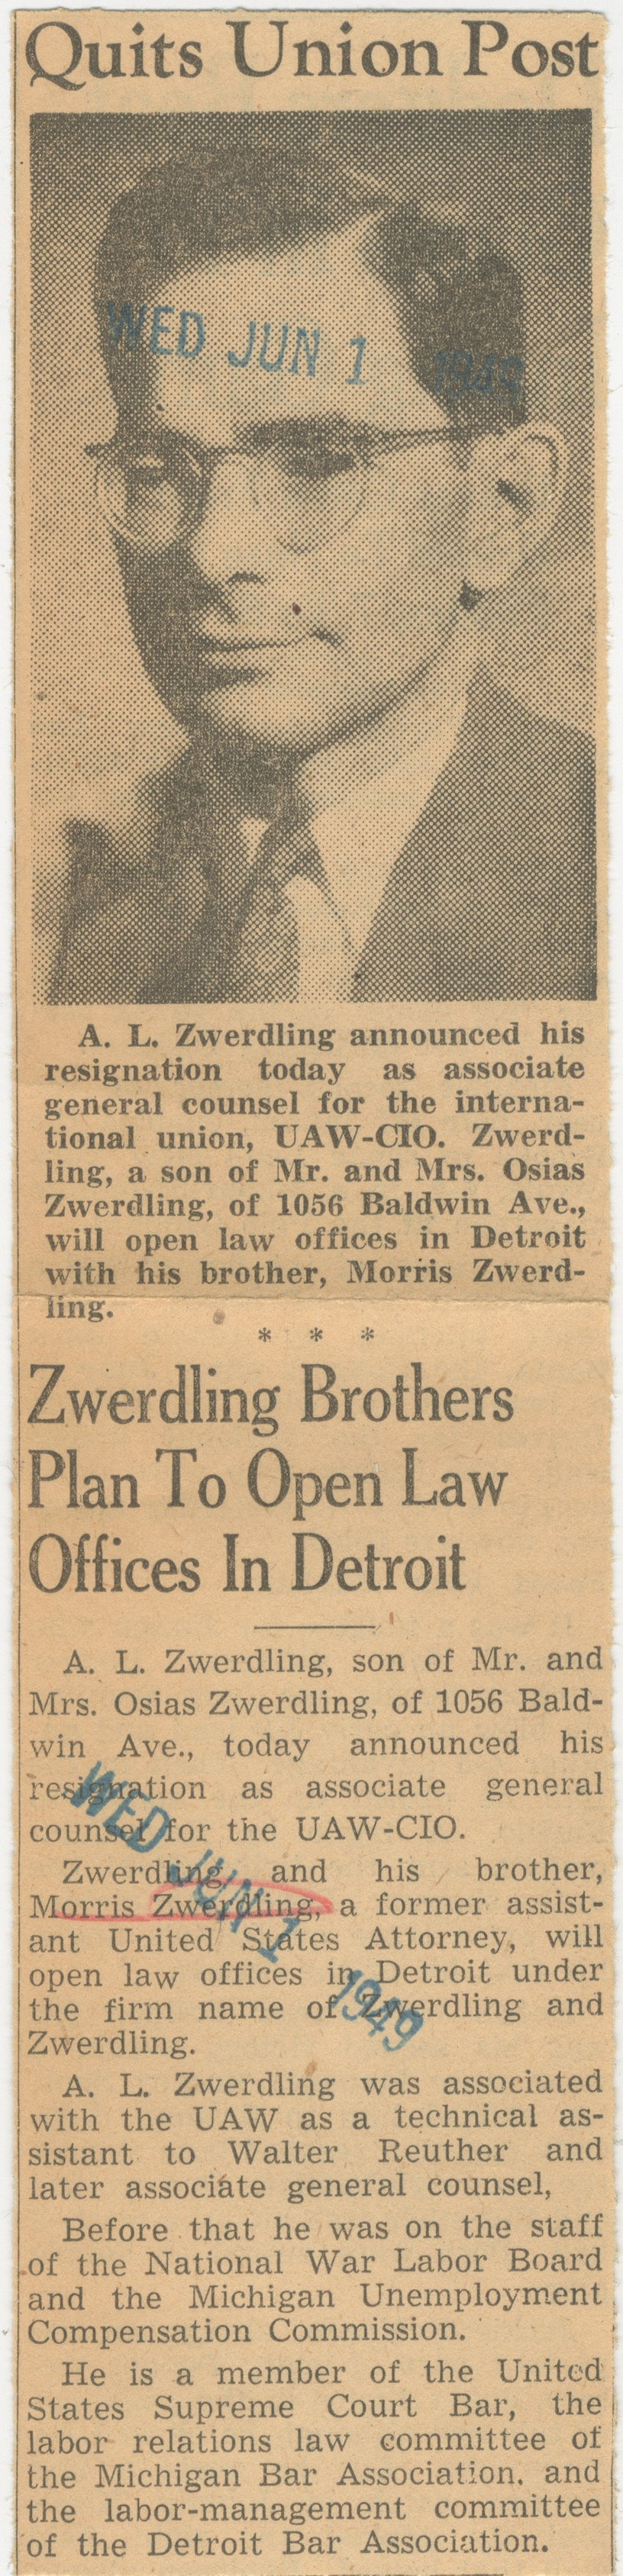 Zwerdling Brothers Plan To Open Law Offices In Detroit image